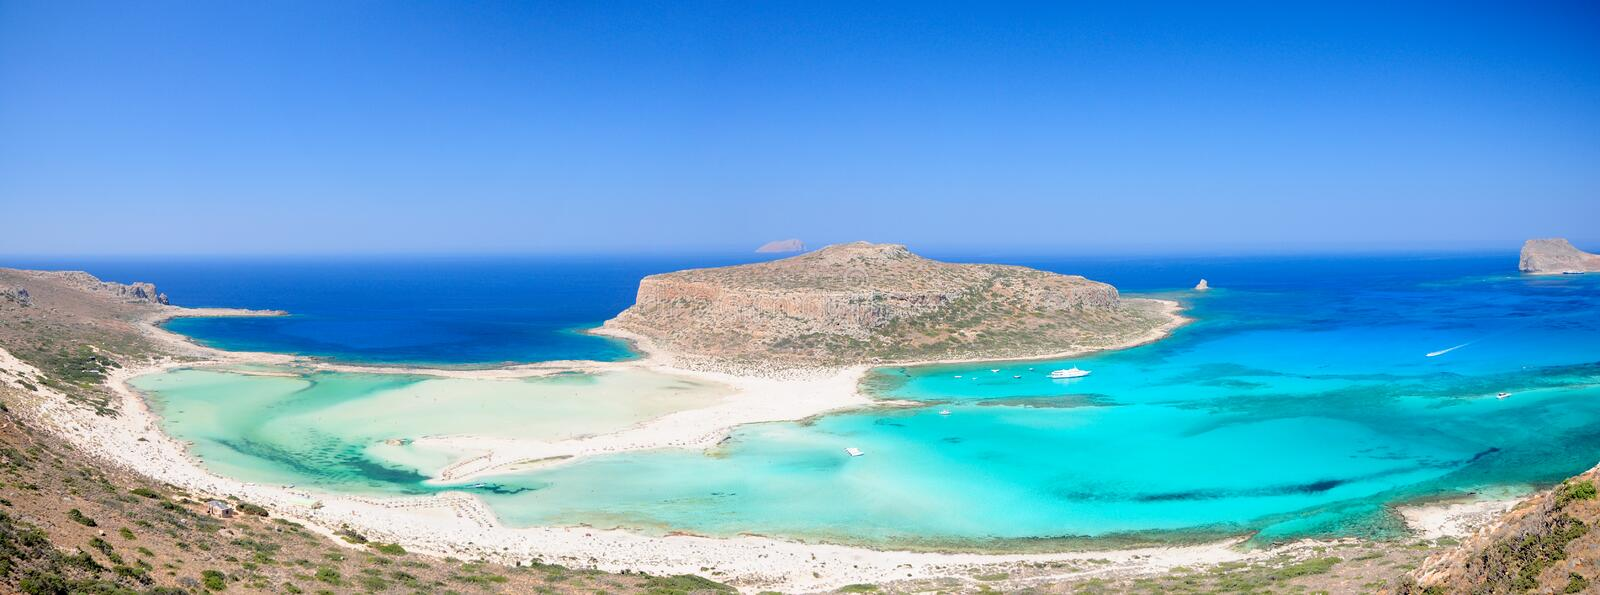 Balos beach Crete. Turquoise water of Balos bay, Crete, Greece stock photography